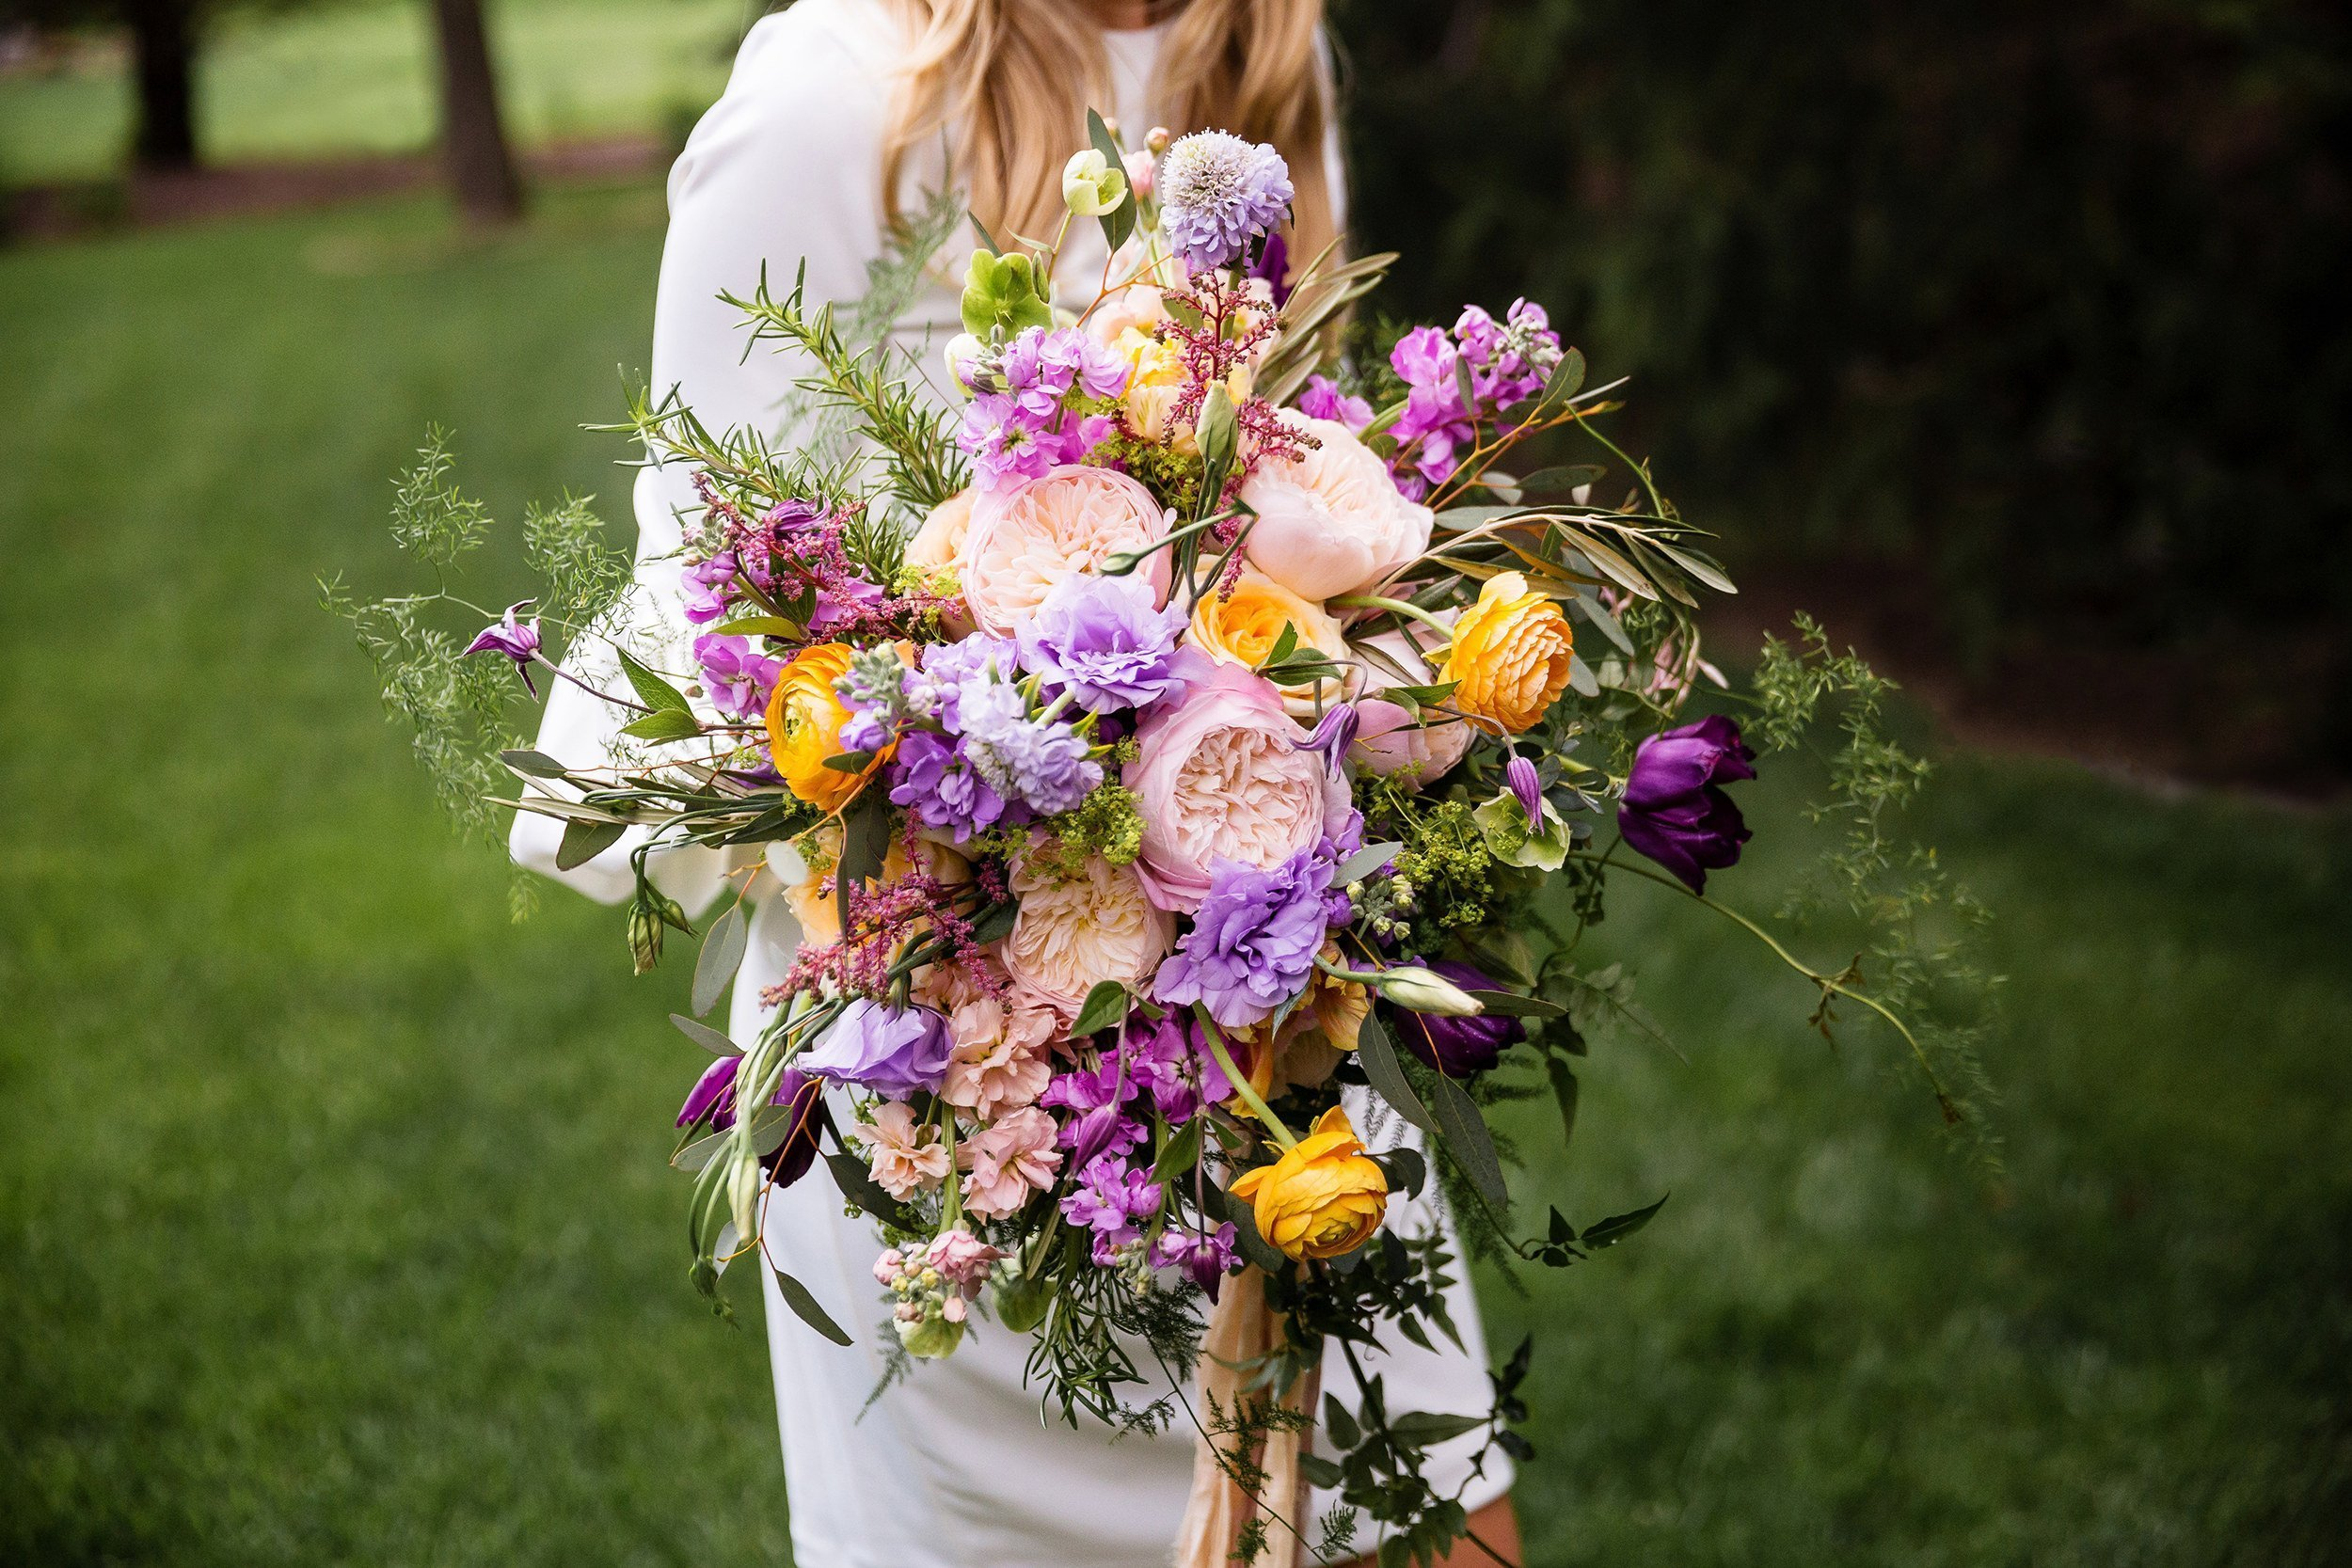 rachael_schirano_illinois_wedding_photographer-nancy.flowers-19